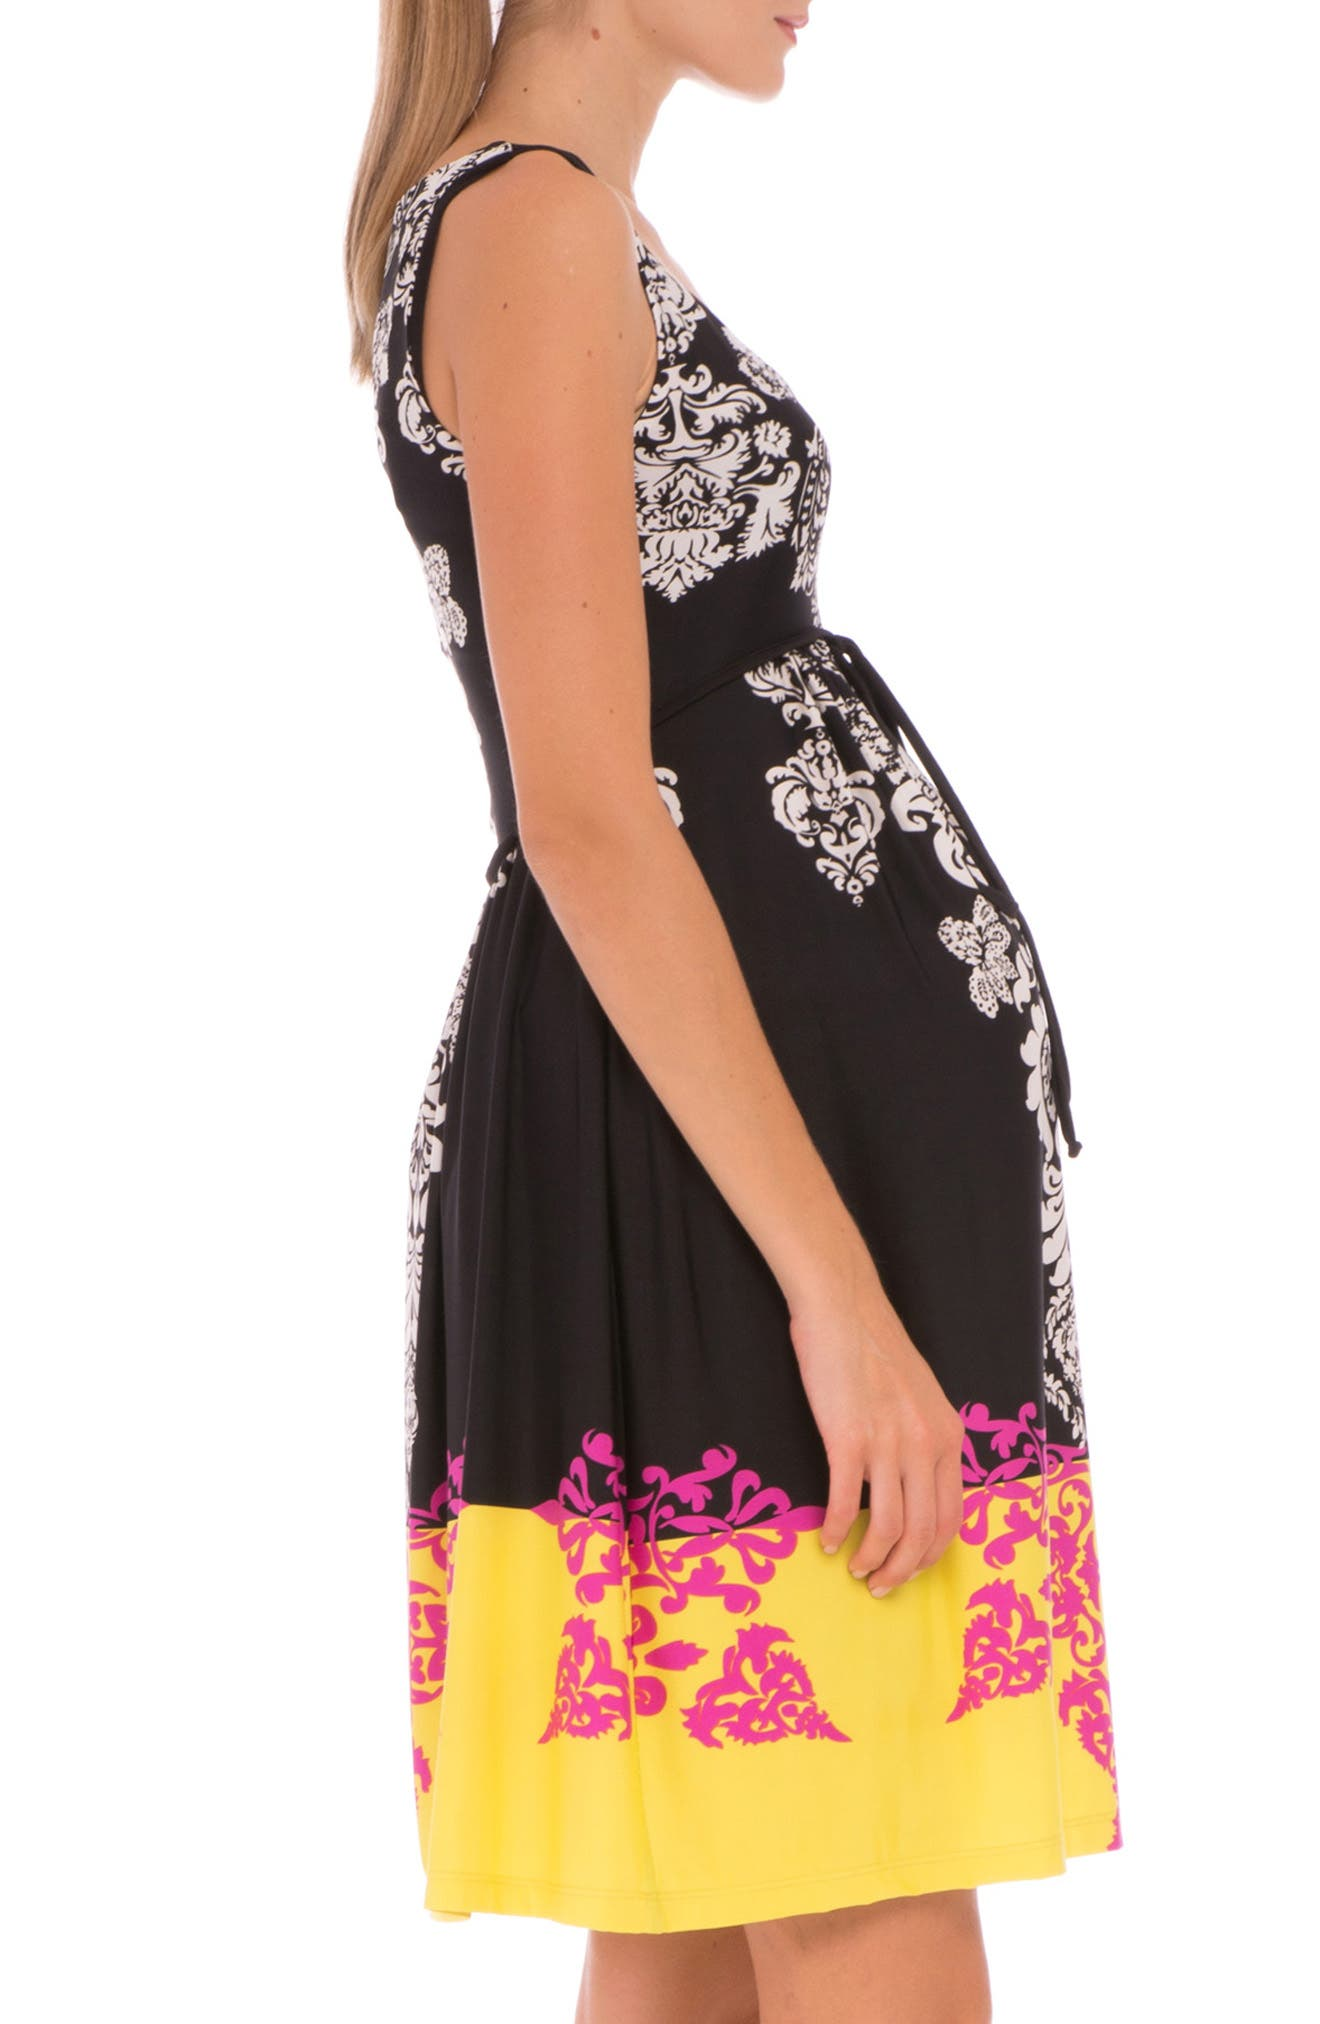 'Eloise' Graphic Maternity Dress,                             Alternate thumbnail 3, color,                             BLACK/ YELLOW PRINT